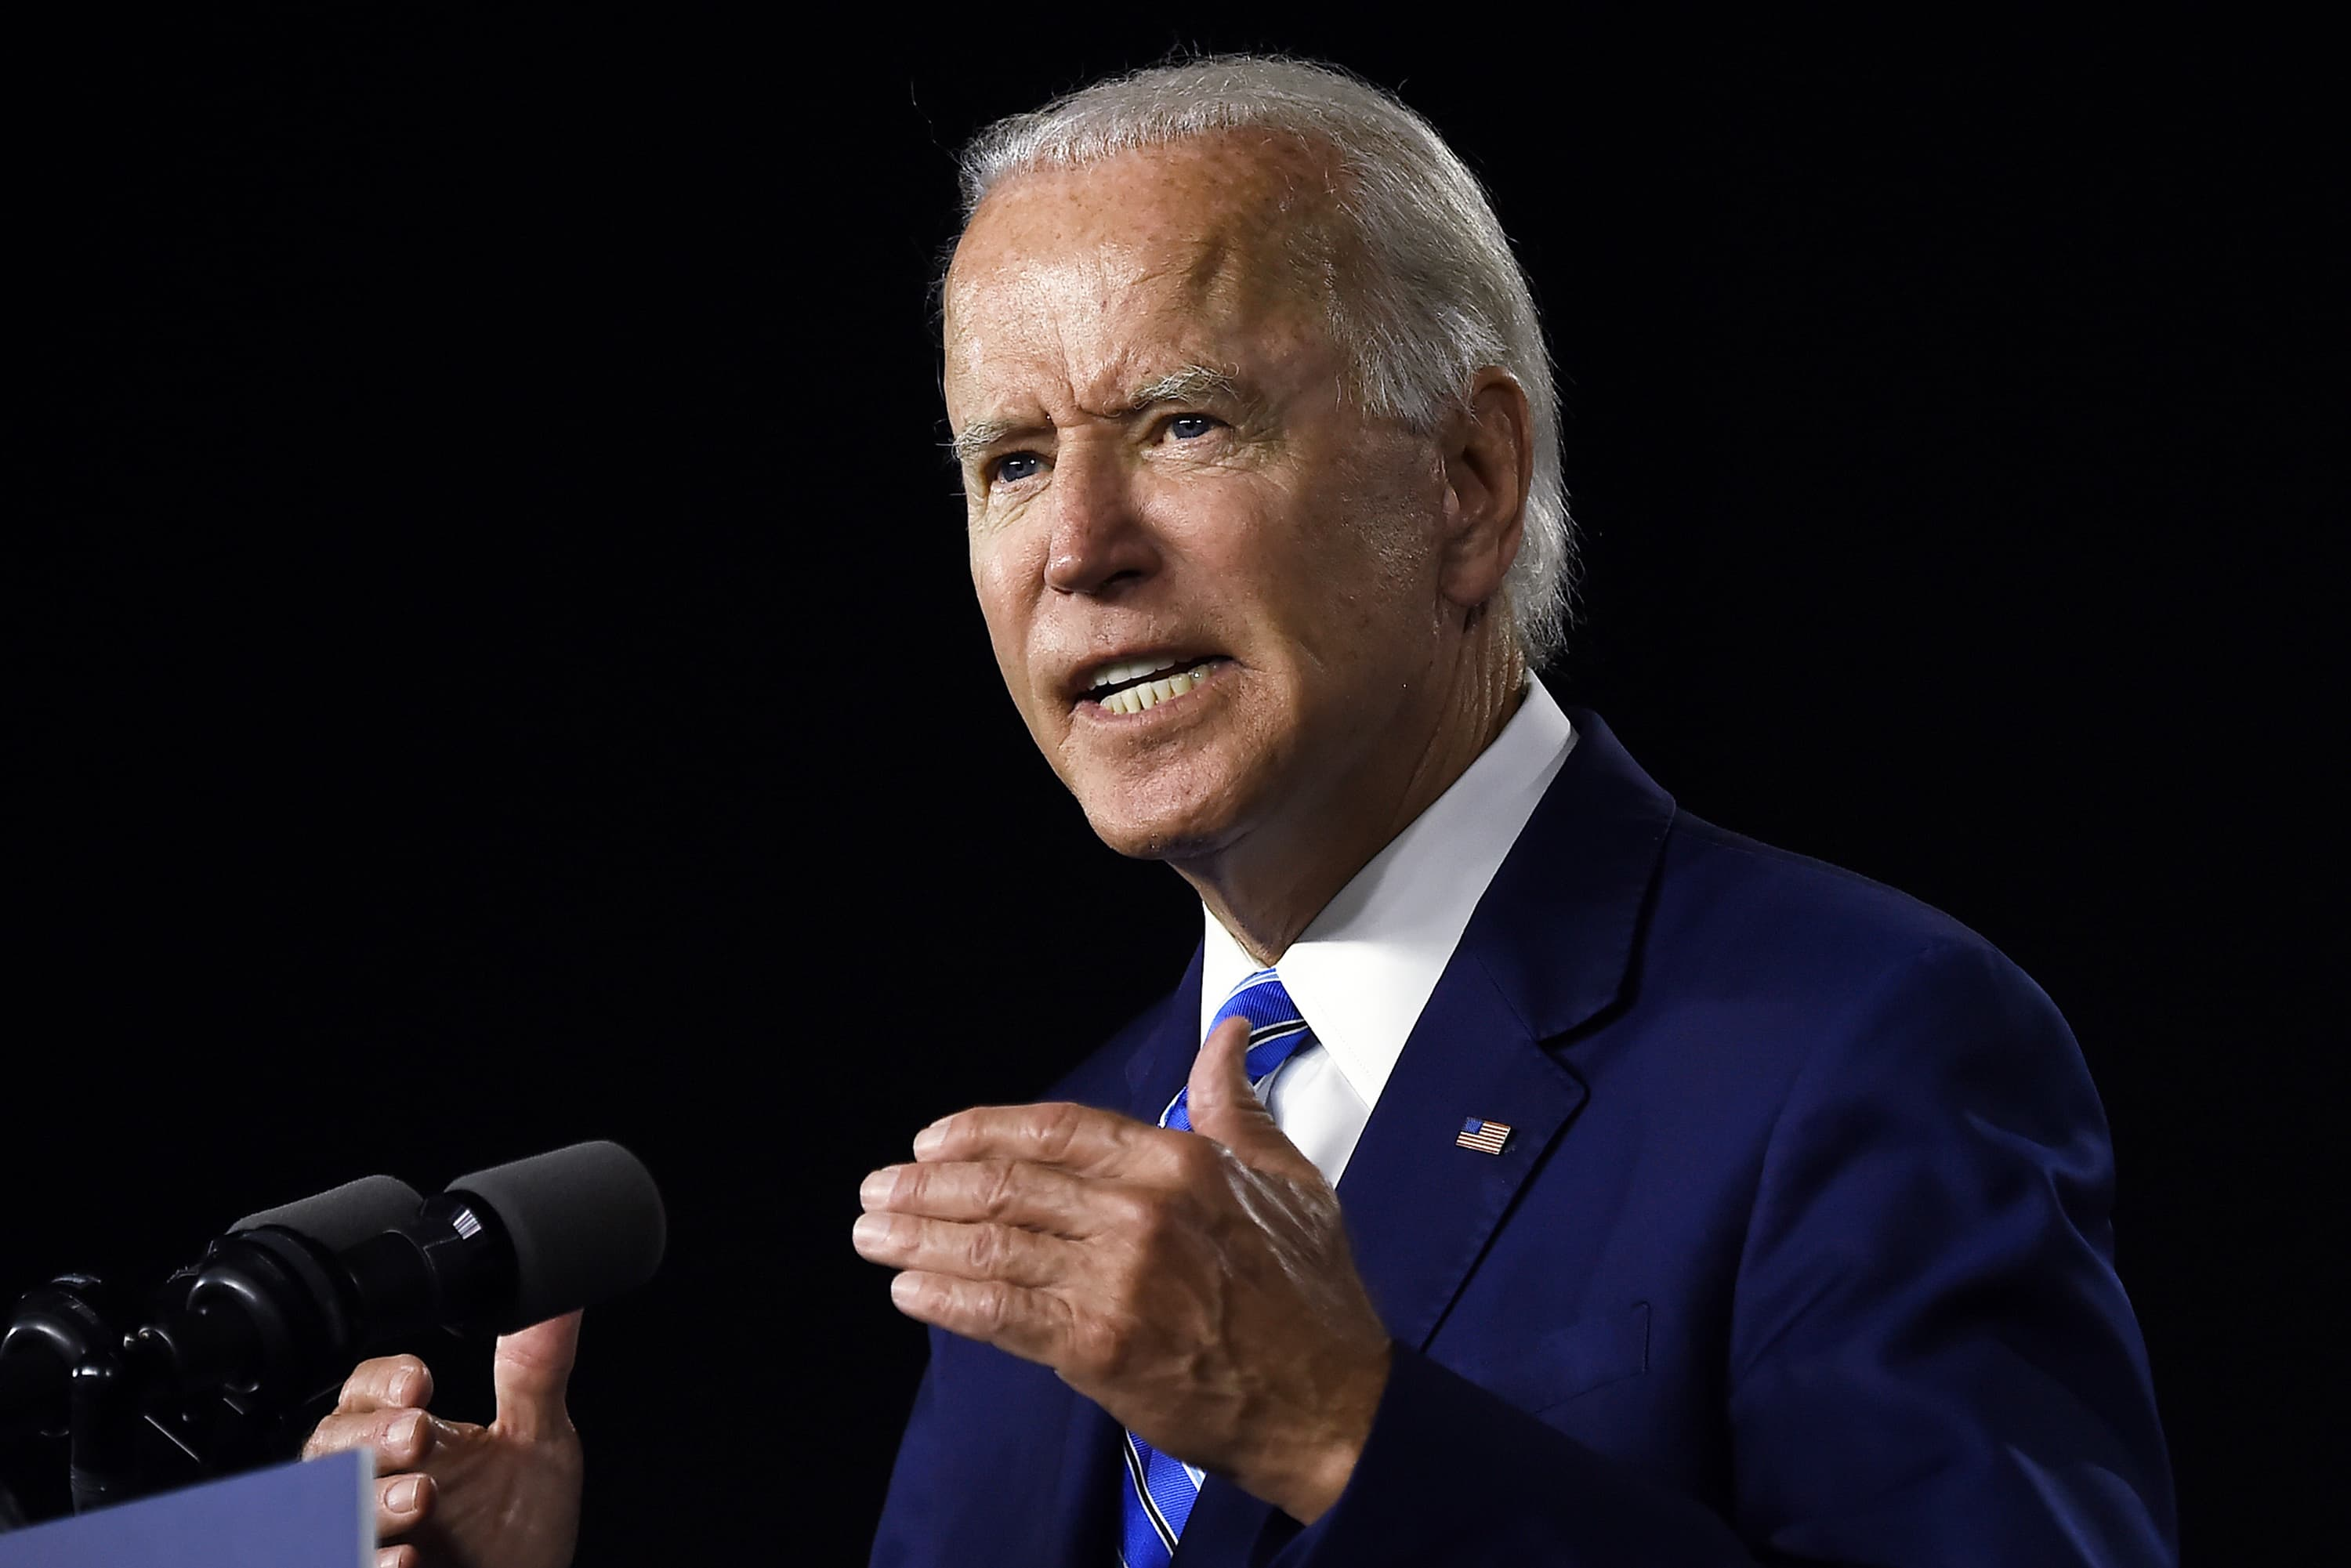 Here's what a Biden presidency might mean for your taxes